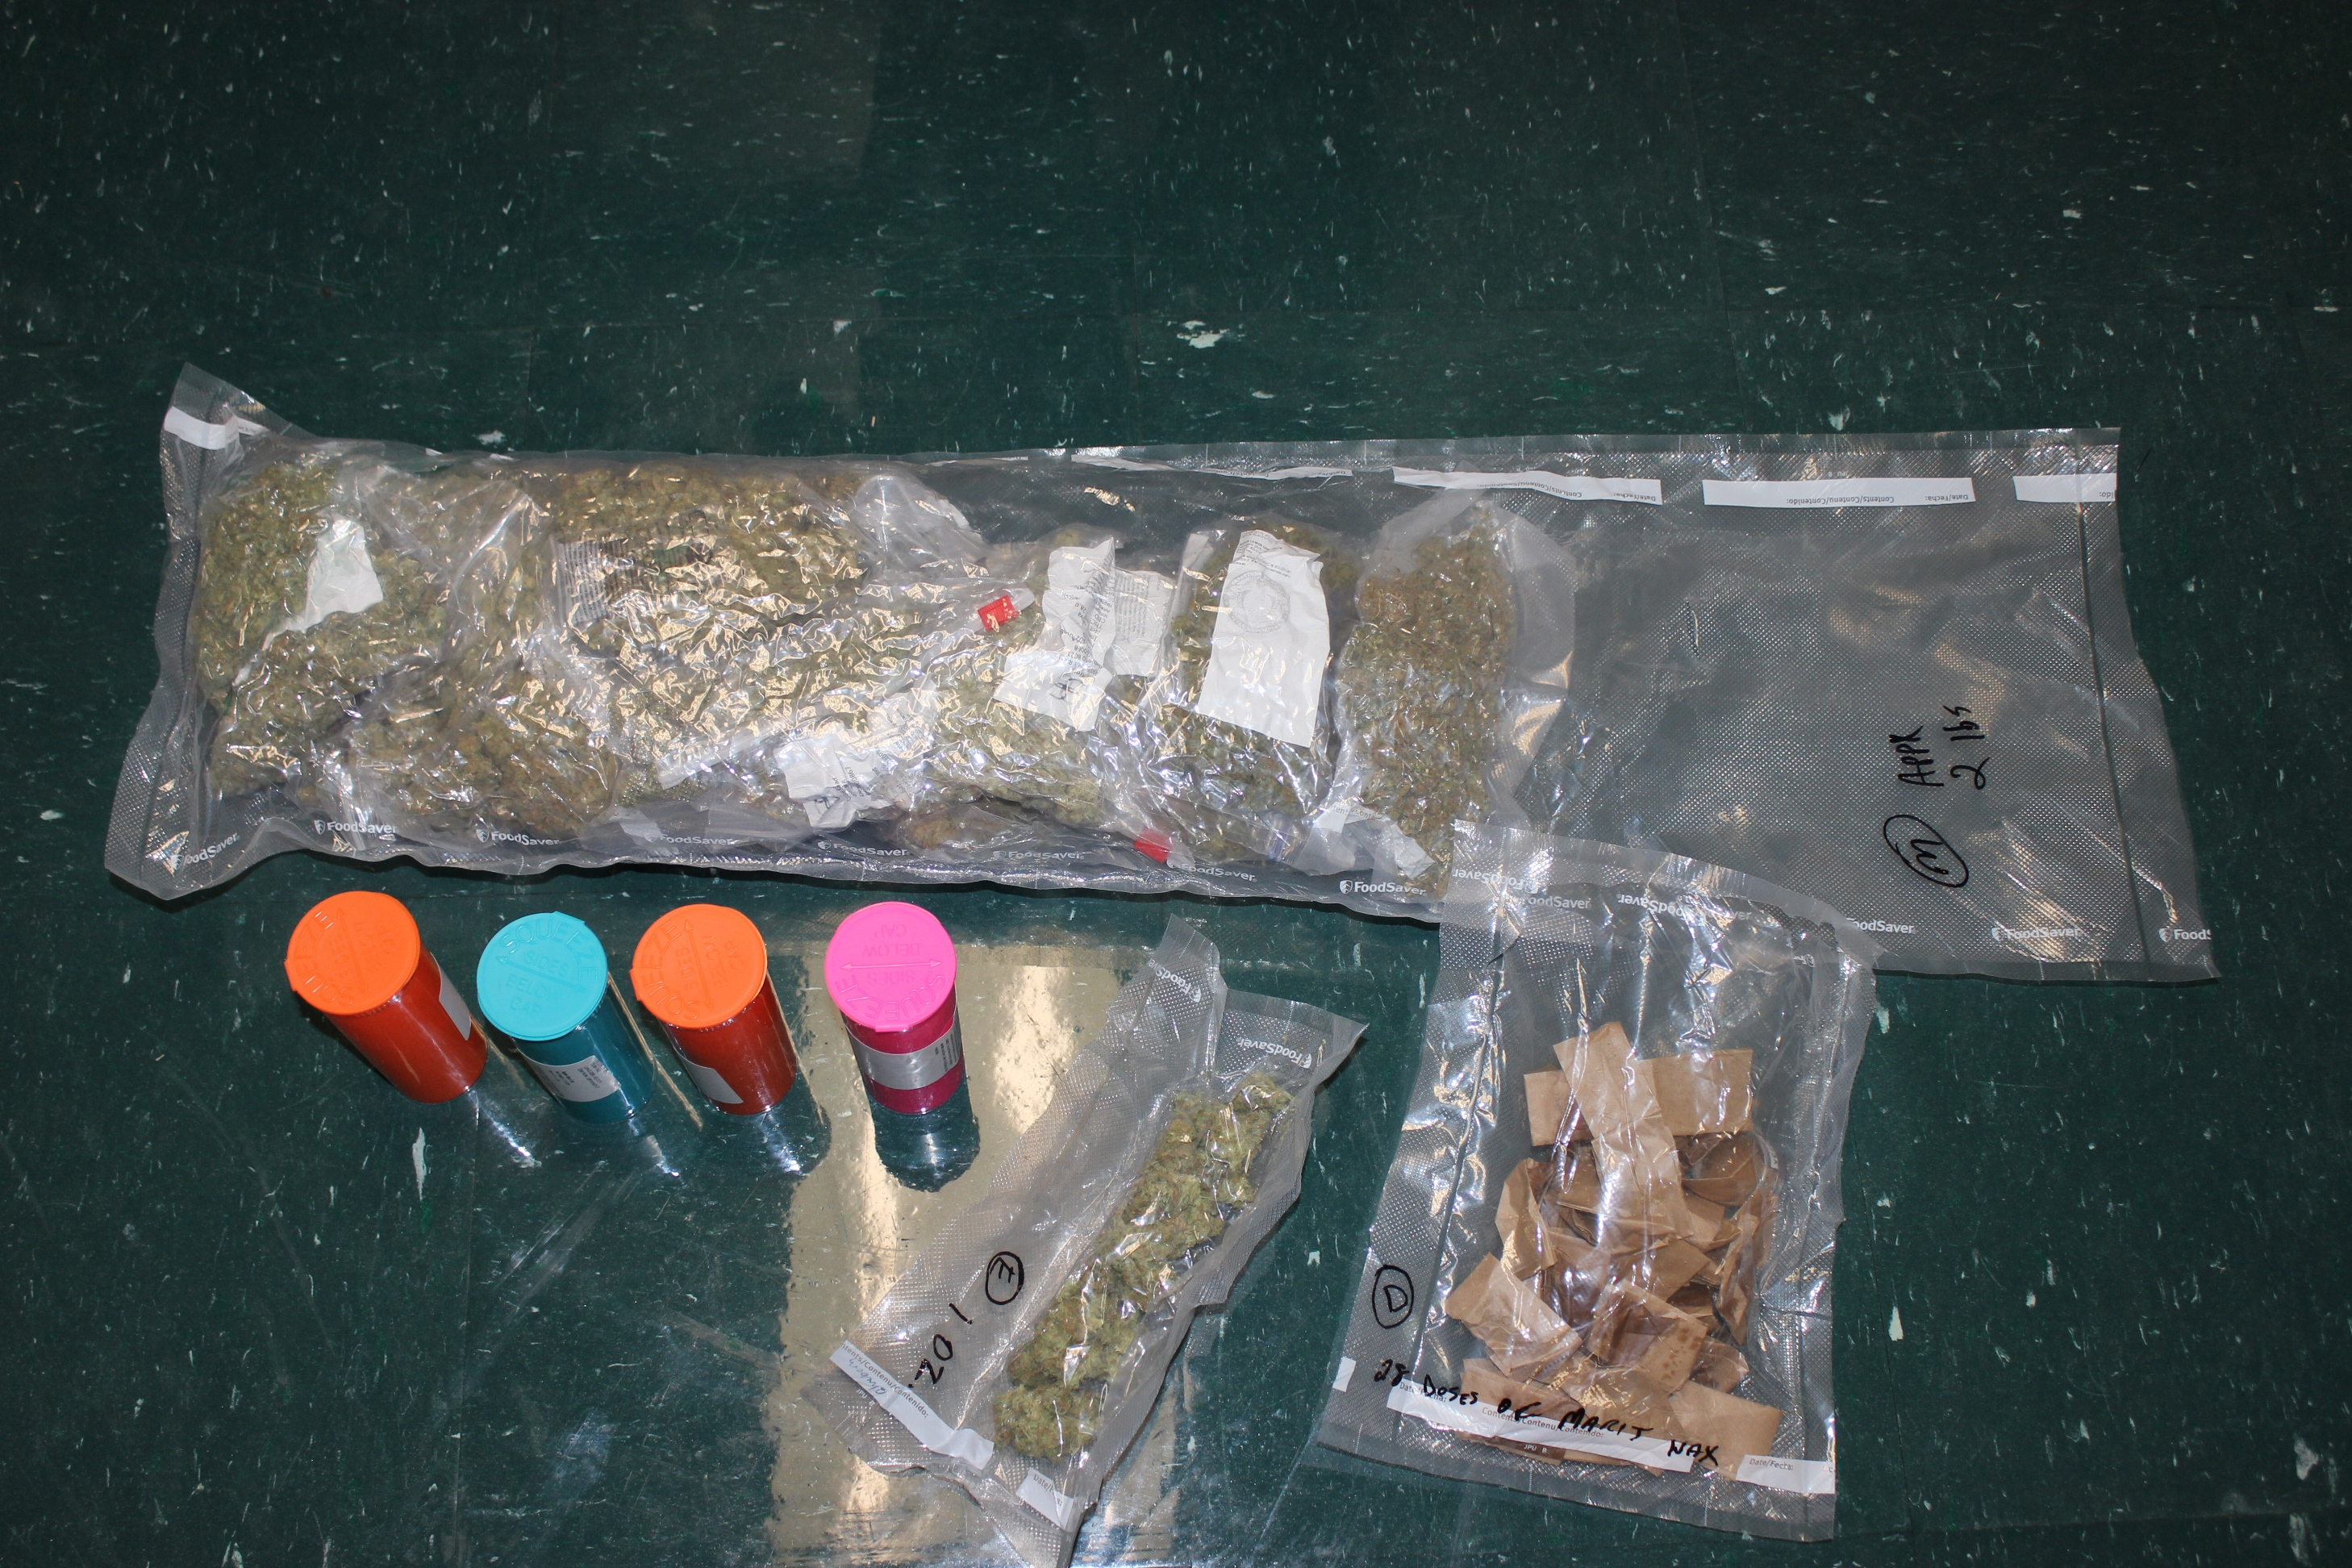 Prescription marijuana leads to an arrest in Murfreesboro